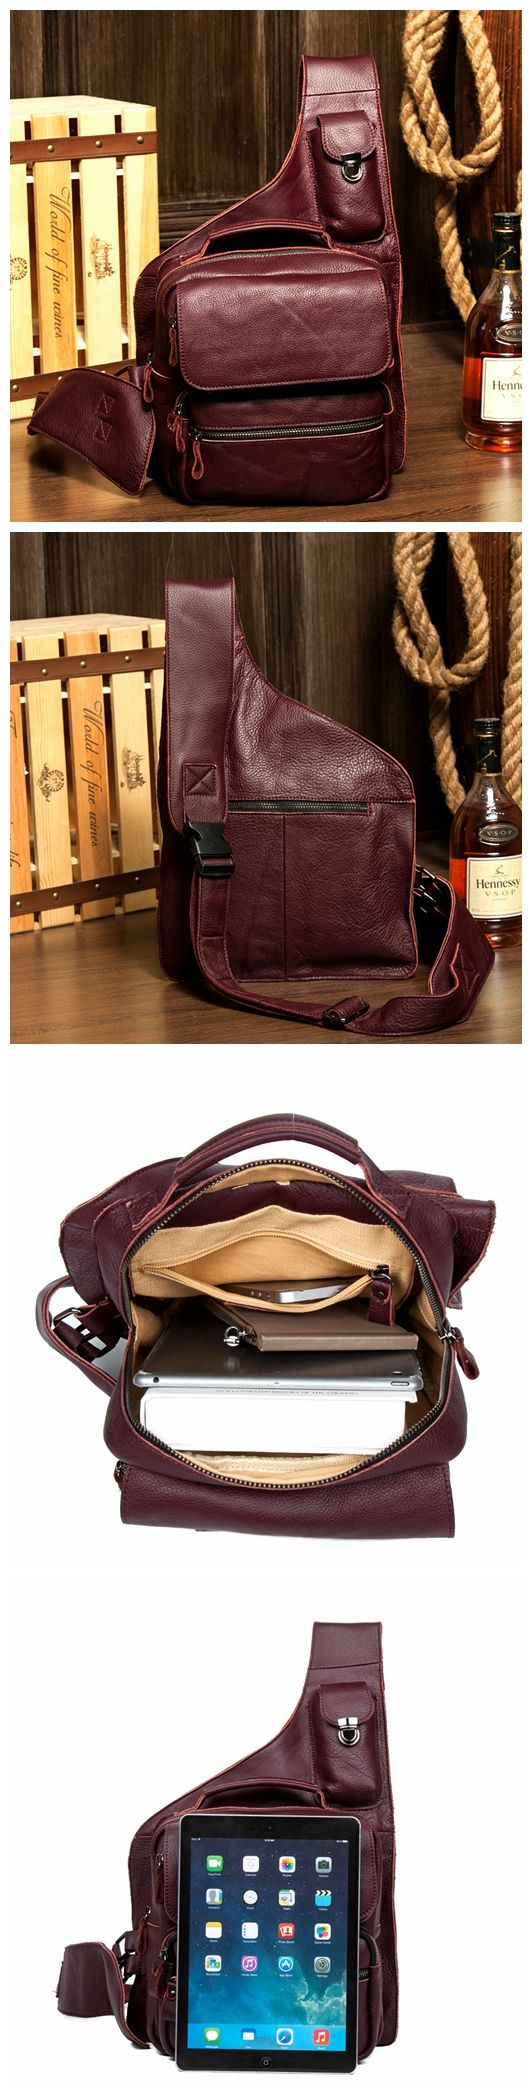 NEW LEATHER CHEST BAG, MEN'S SHOULDER BAG, CHEST BAG, GIFTS FOR MEN AND WOMEN MS049